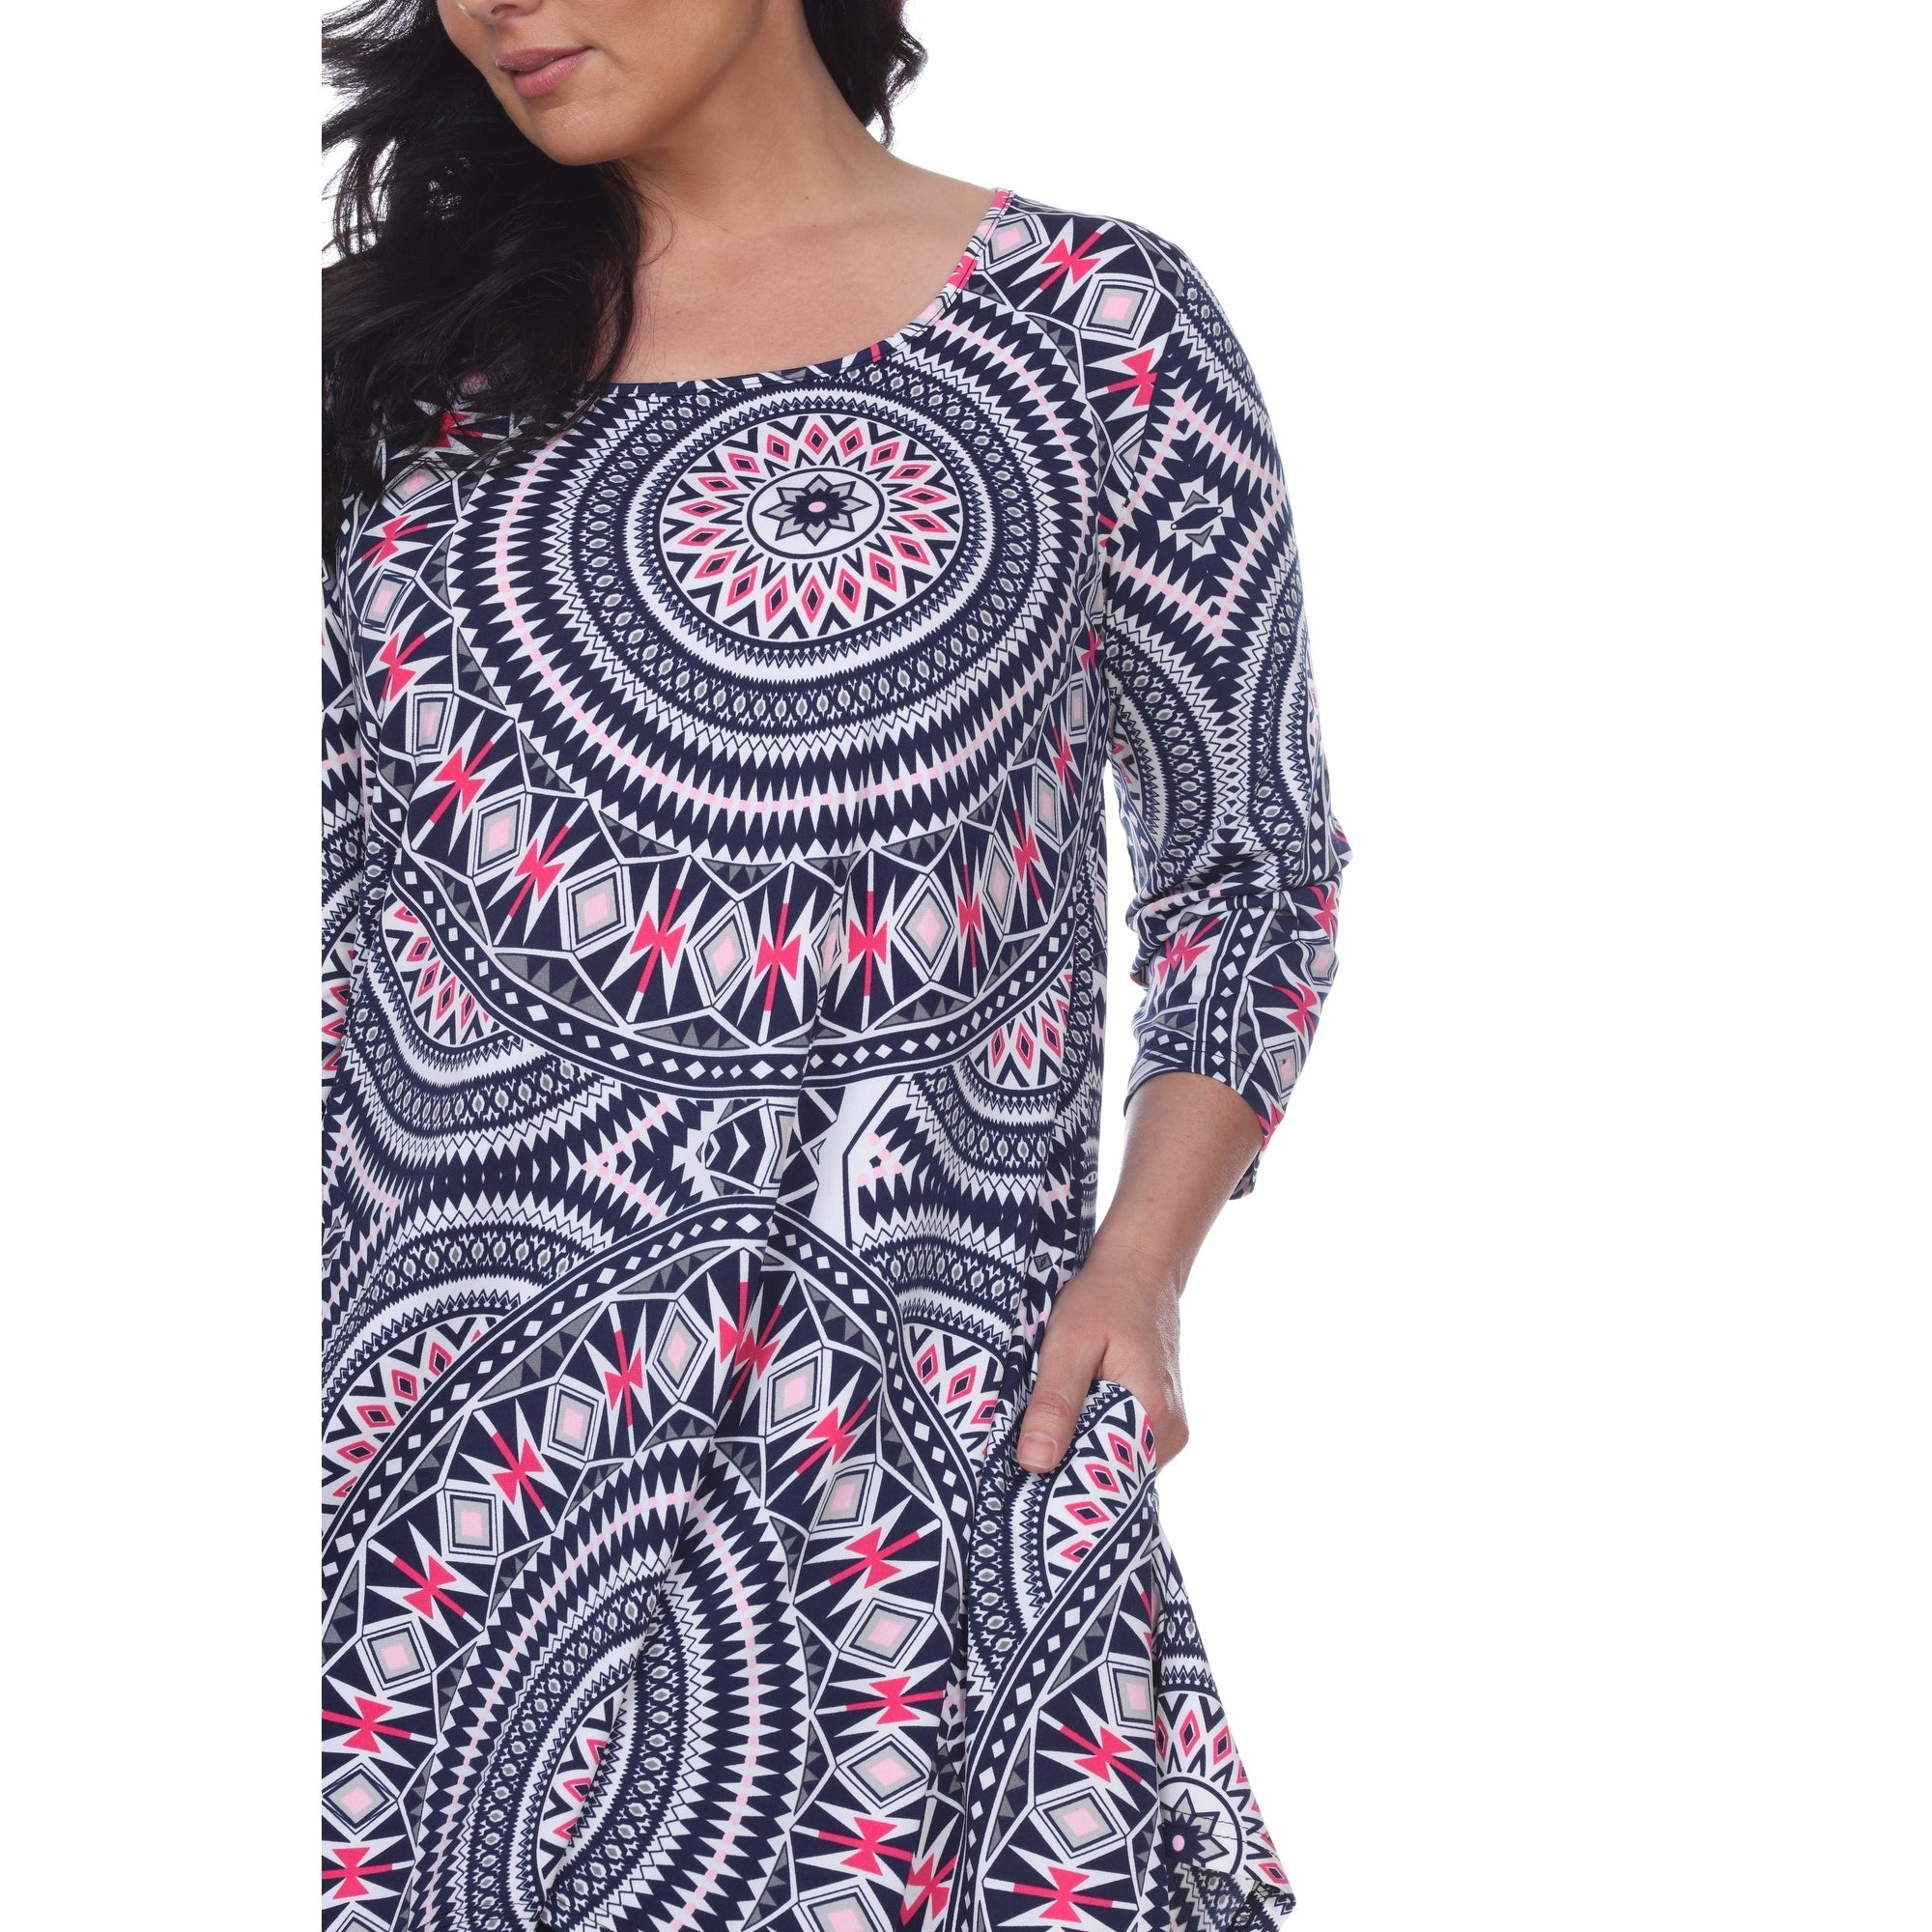 81f96826fe0 Shop White Mark Women's Plus Size 'Maji' Tunic - Free Shipping On Orders  Over $45 - Overstock - 21502473